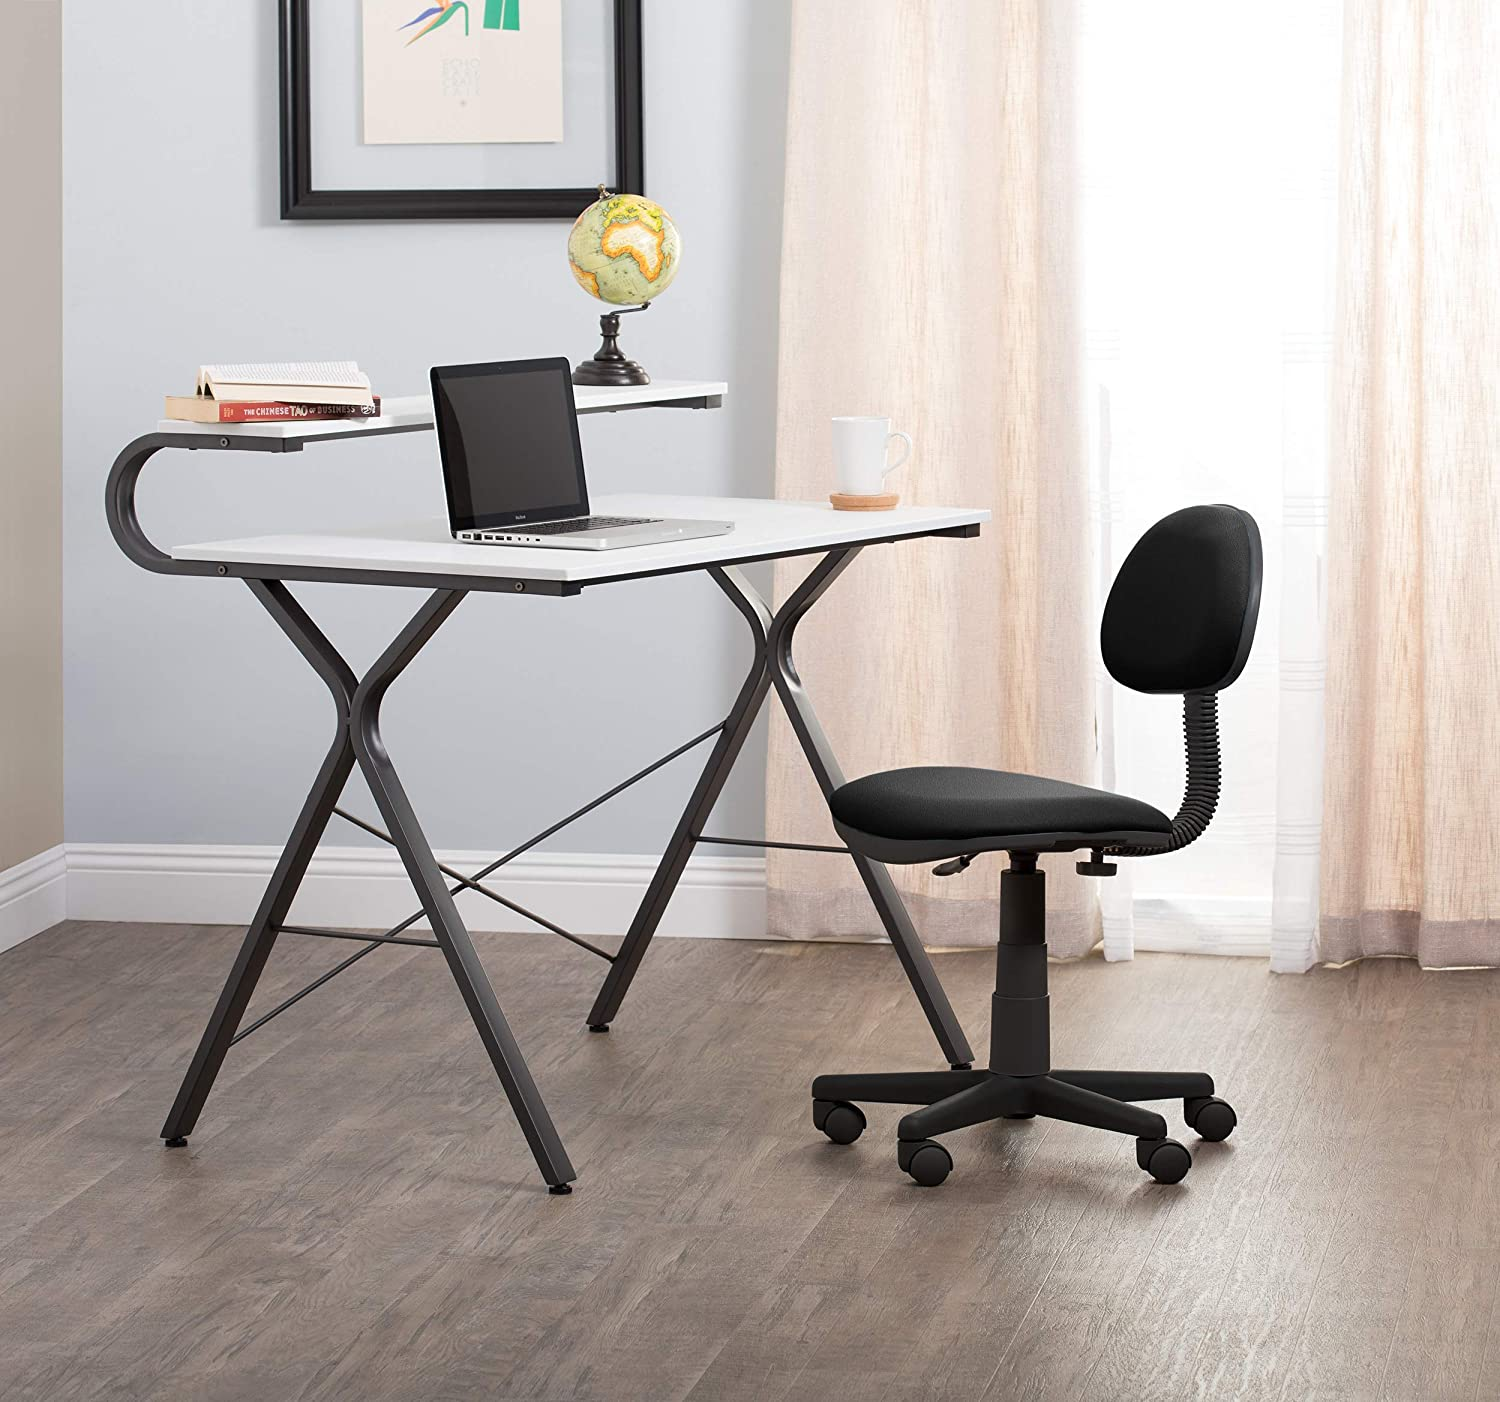 Calico Designs Deluxe Task Chair  Blue with Gray Base 18519